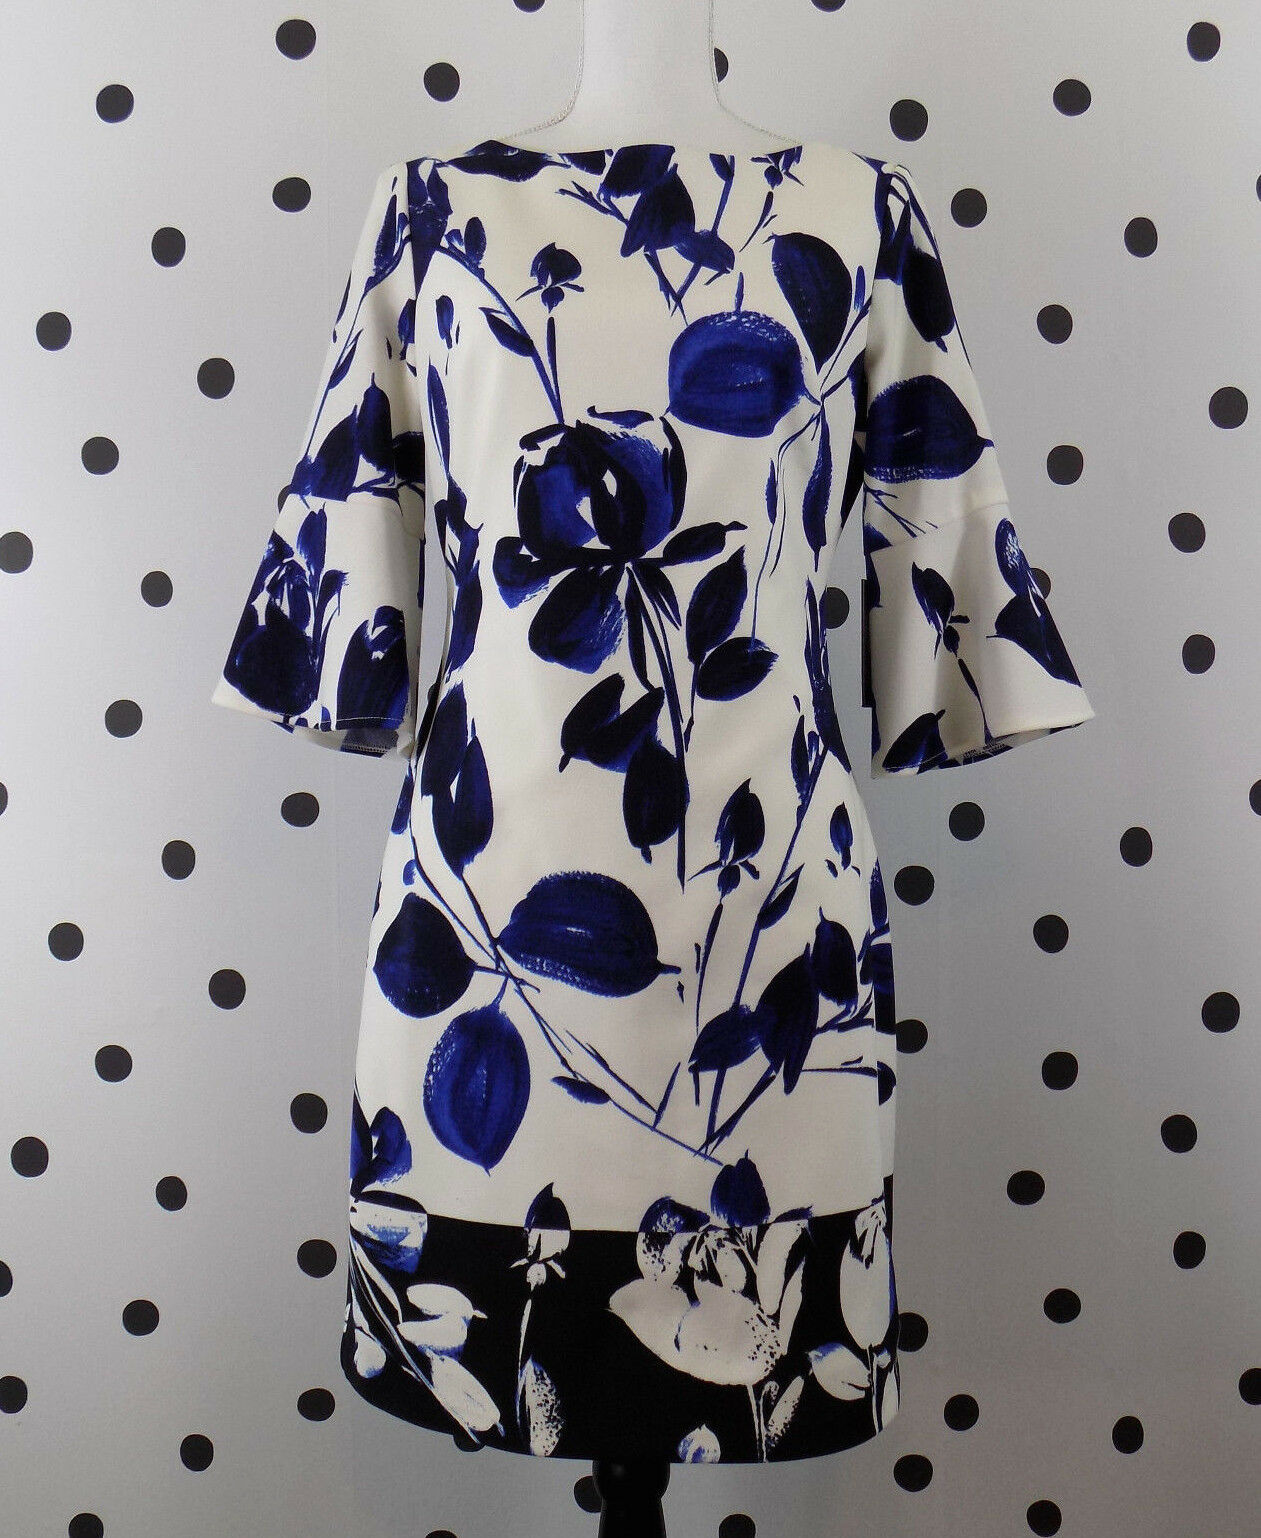 Vince Camuto Womens Scuba Sheath Dress Size 6 Floral White bluee Bell Sleeve New